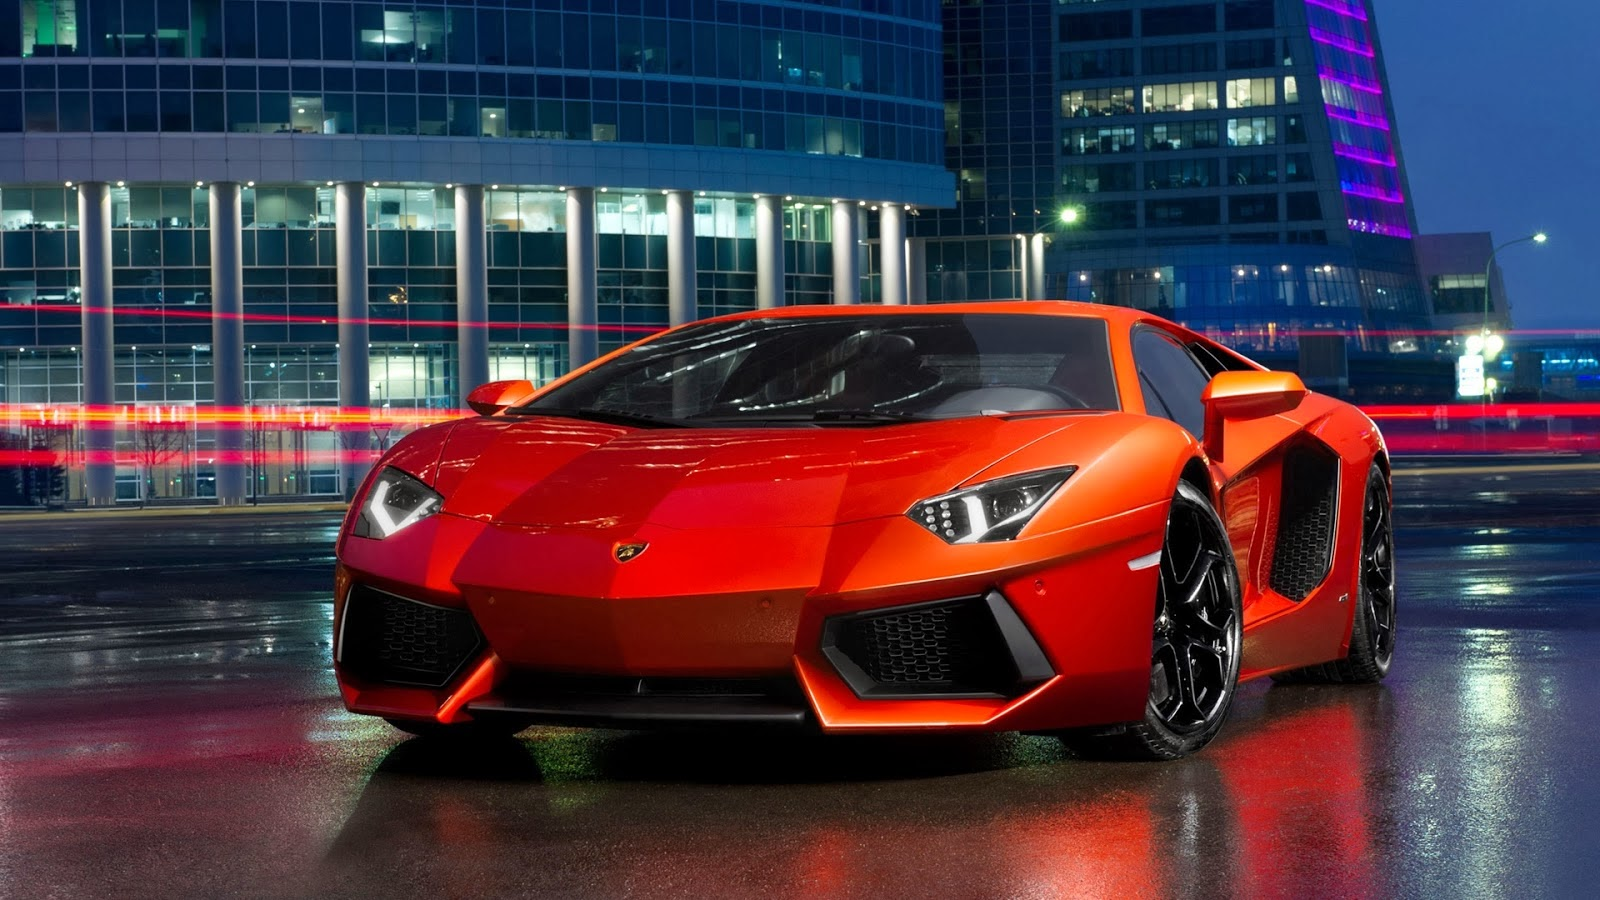 wallpaper 1080p lamborghini aventador hd wallpaper 1080p lamborghini 1600x900